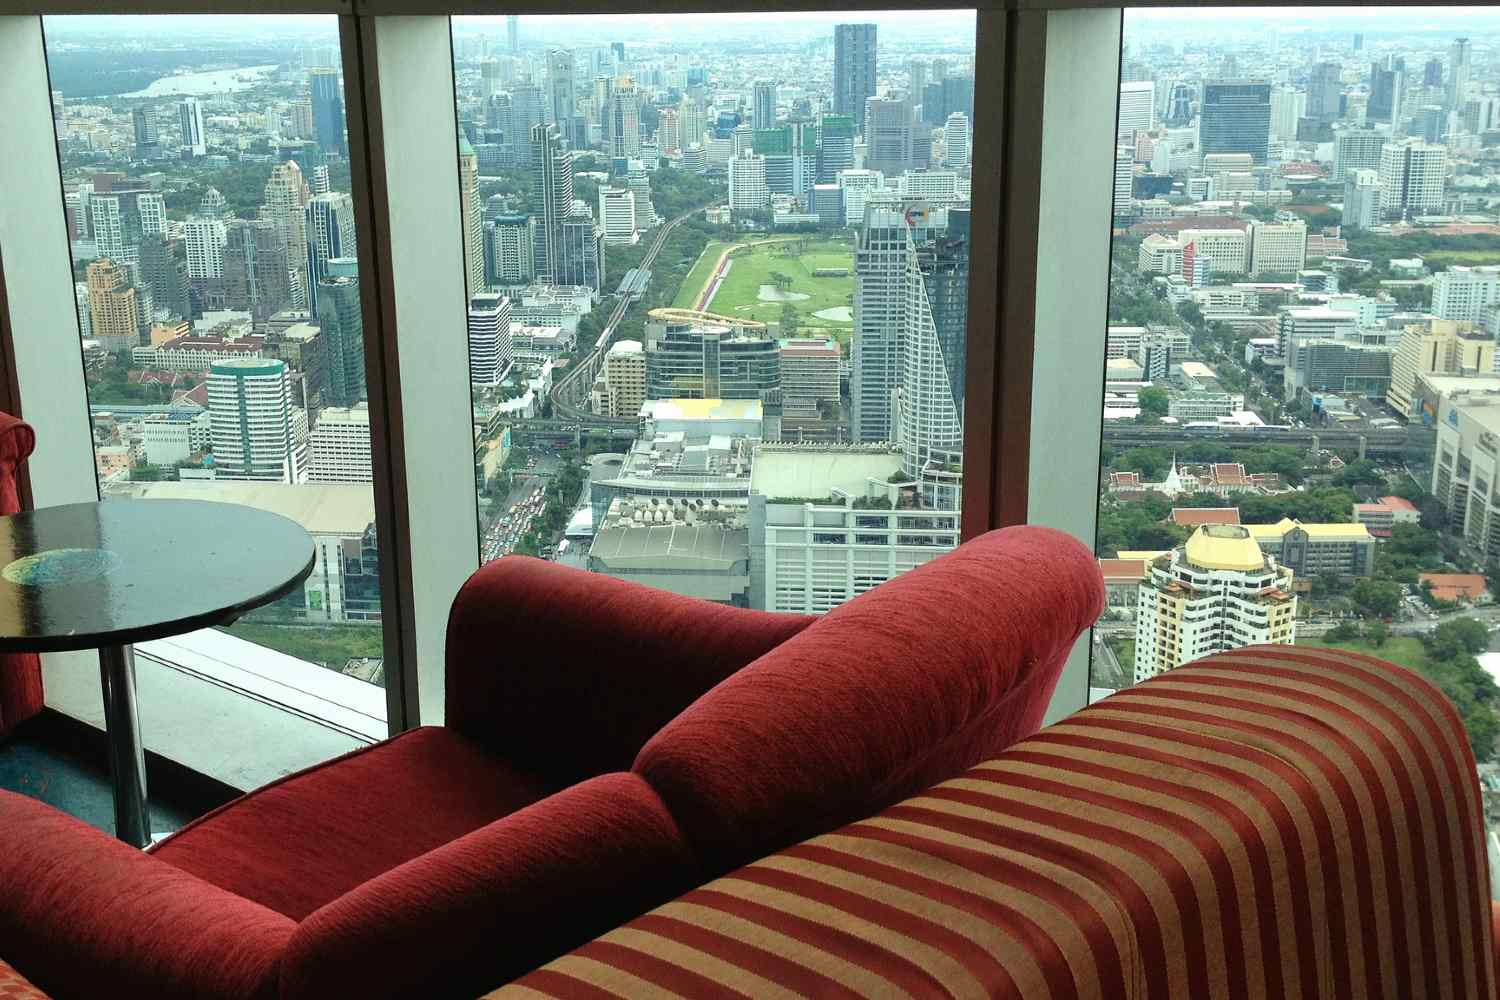 sitting area in the covered Baiyoke Sky Bar with large windows overlooking the city of Bangkok